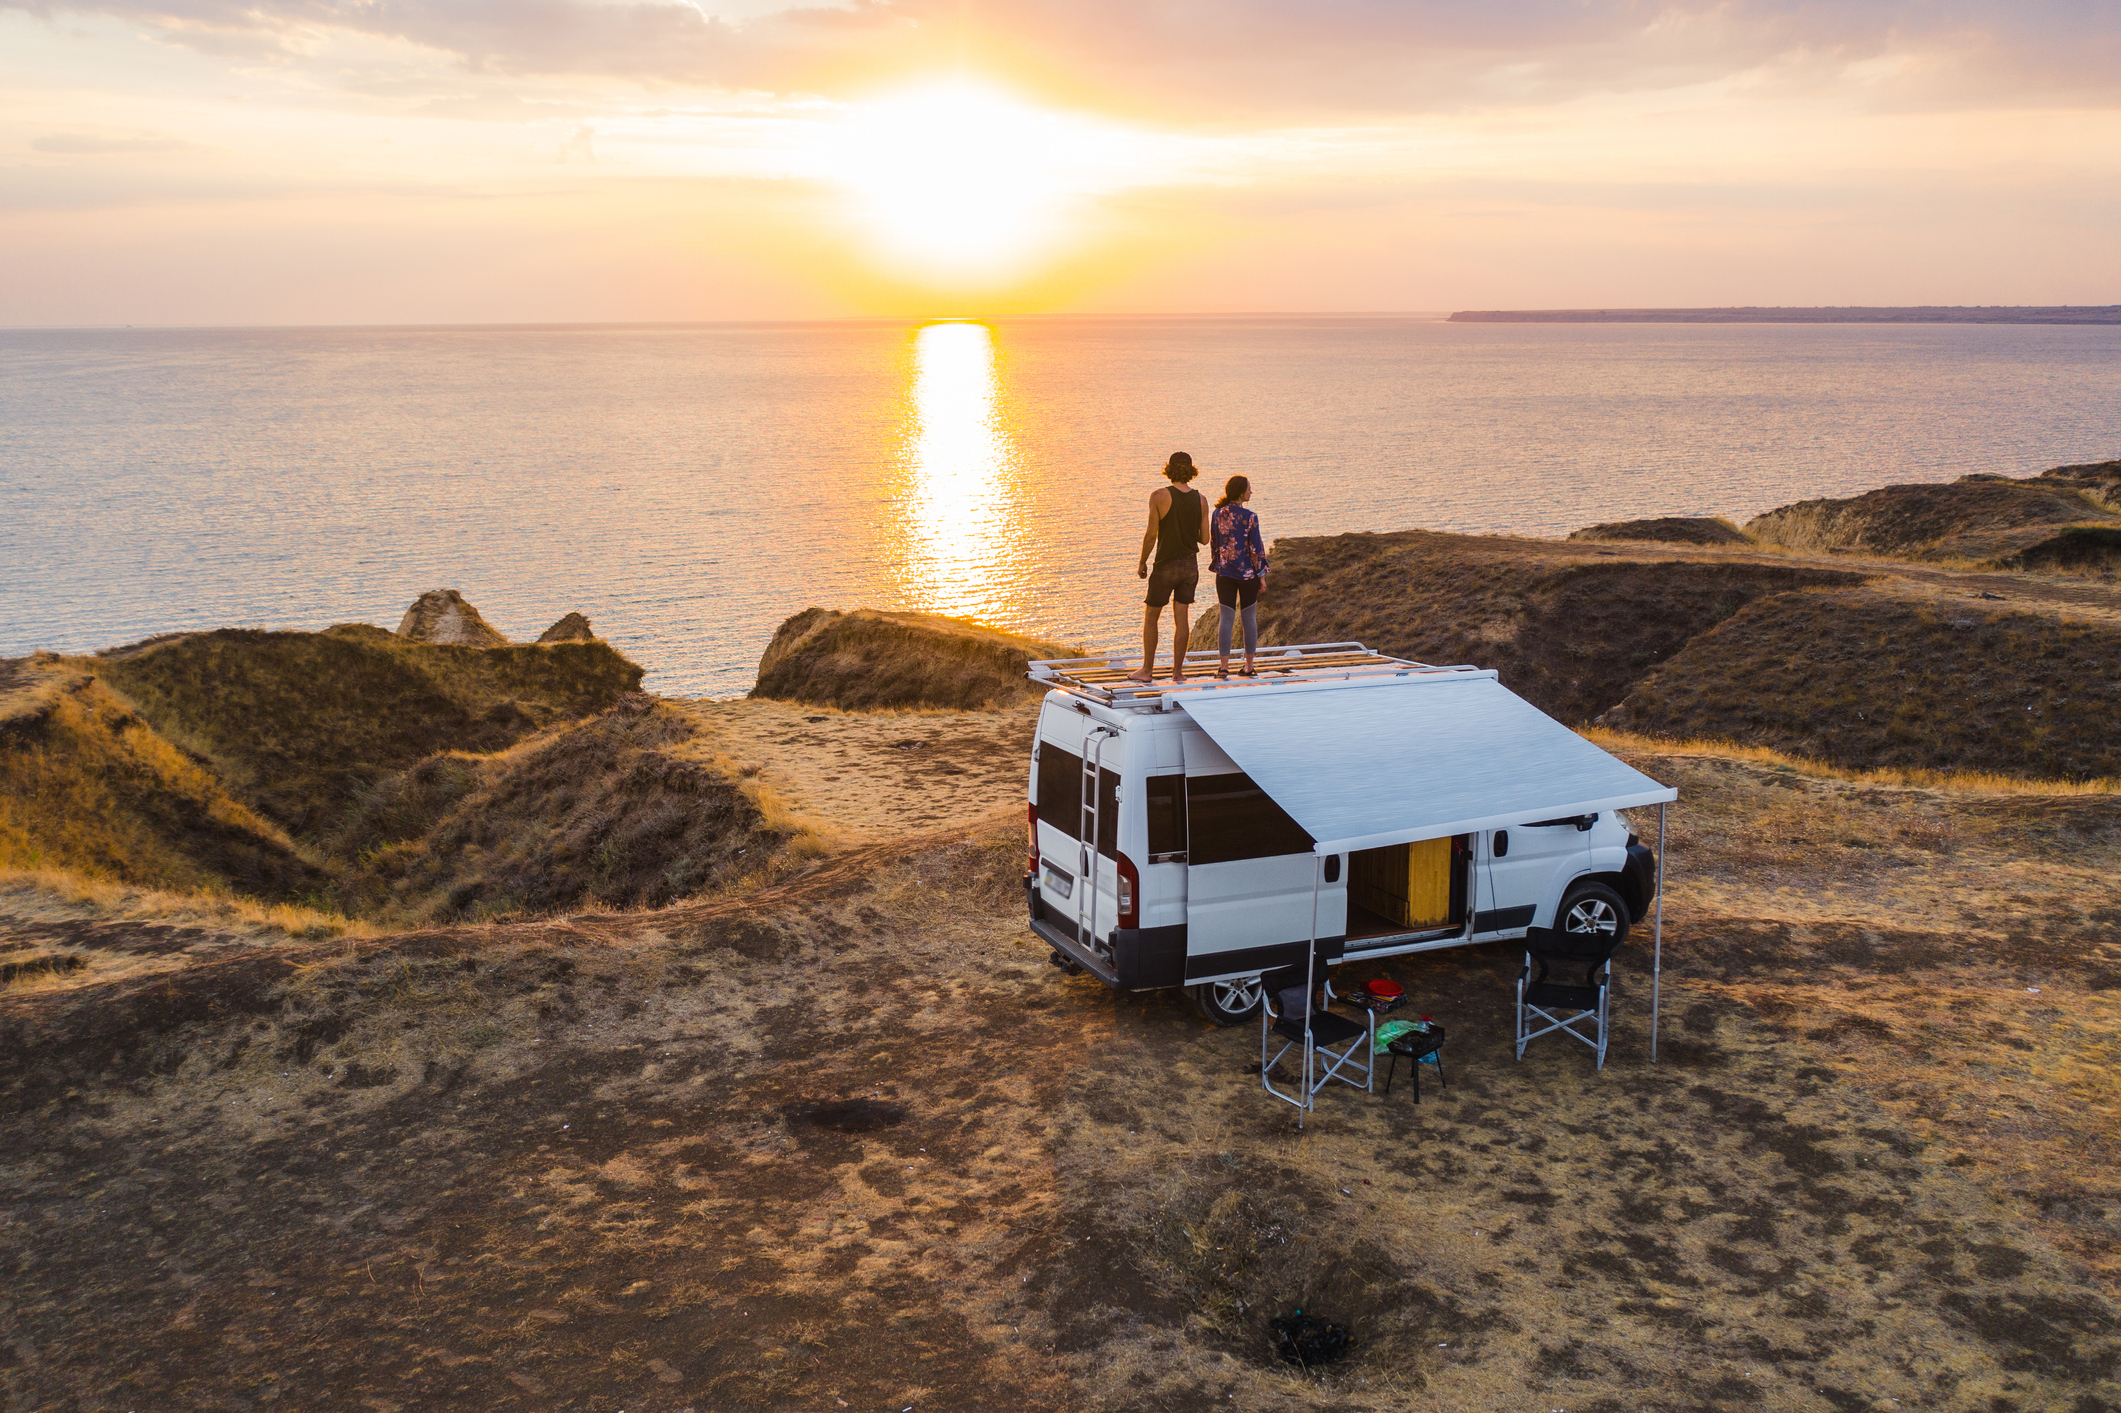 Northern Ireland top UK spot for motorhomes as 2021 sees surge in staycations